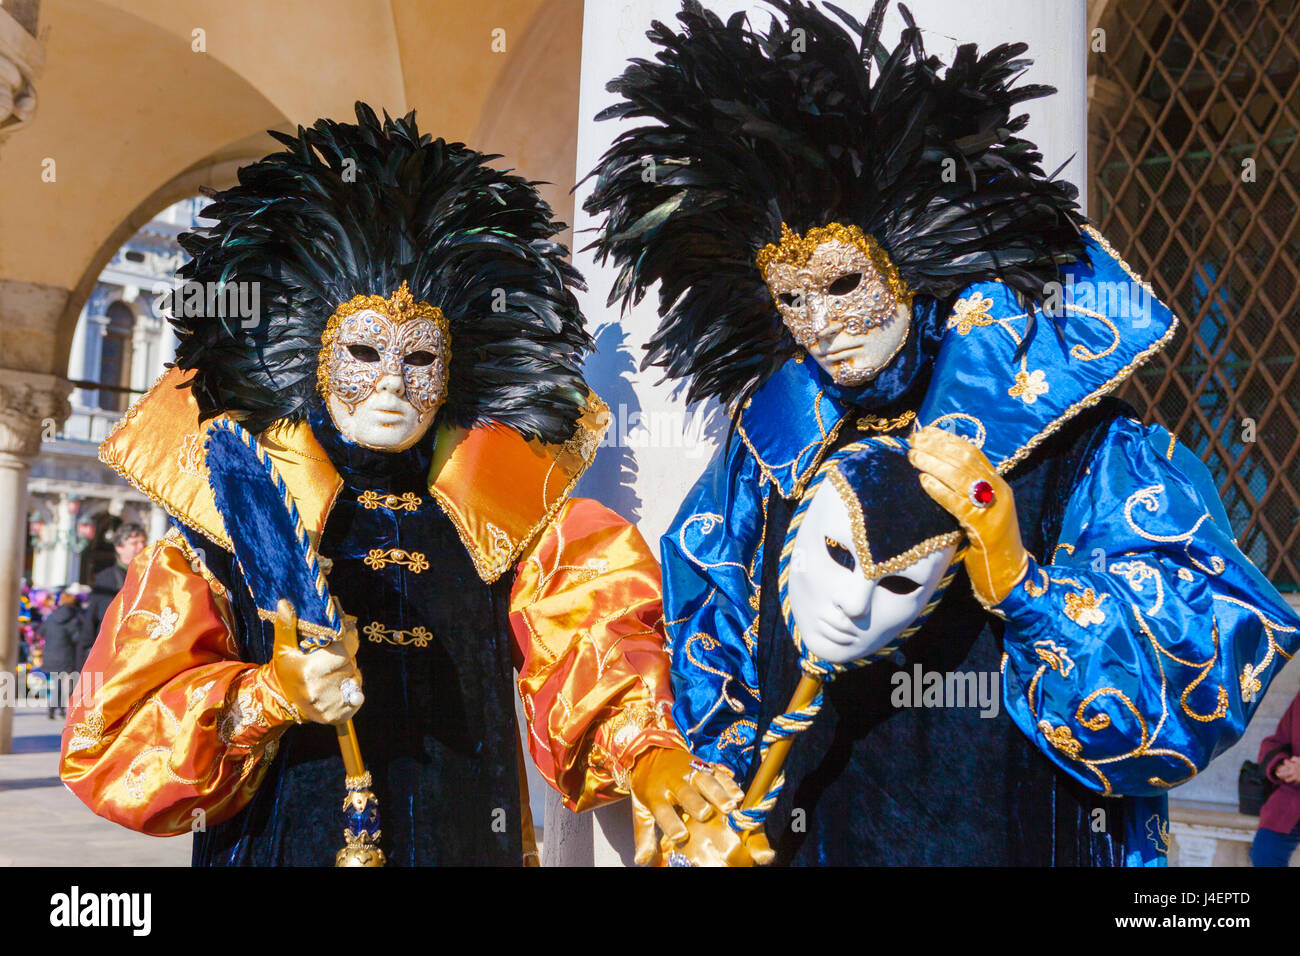 Colourful masks and costumes of the Carnival of Venice